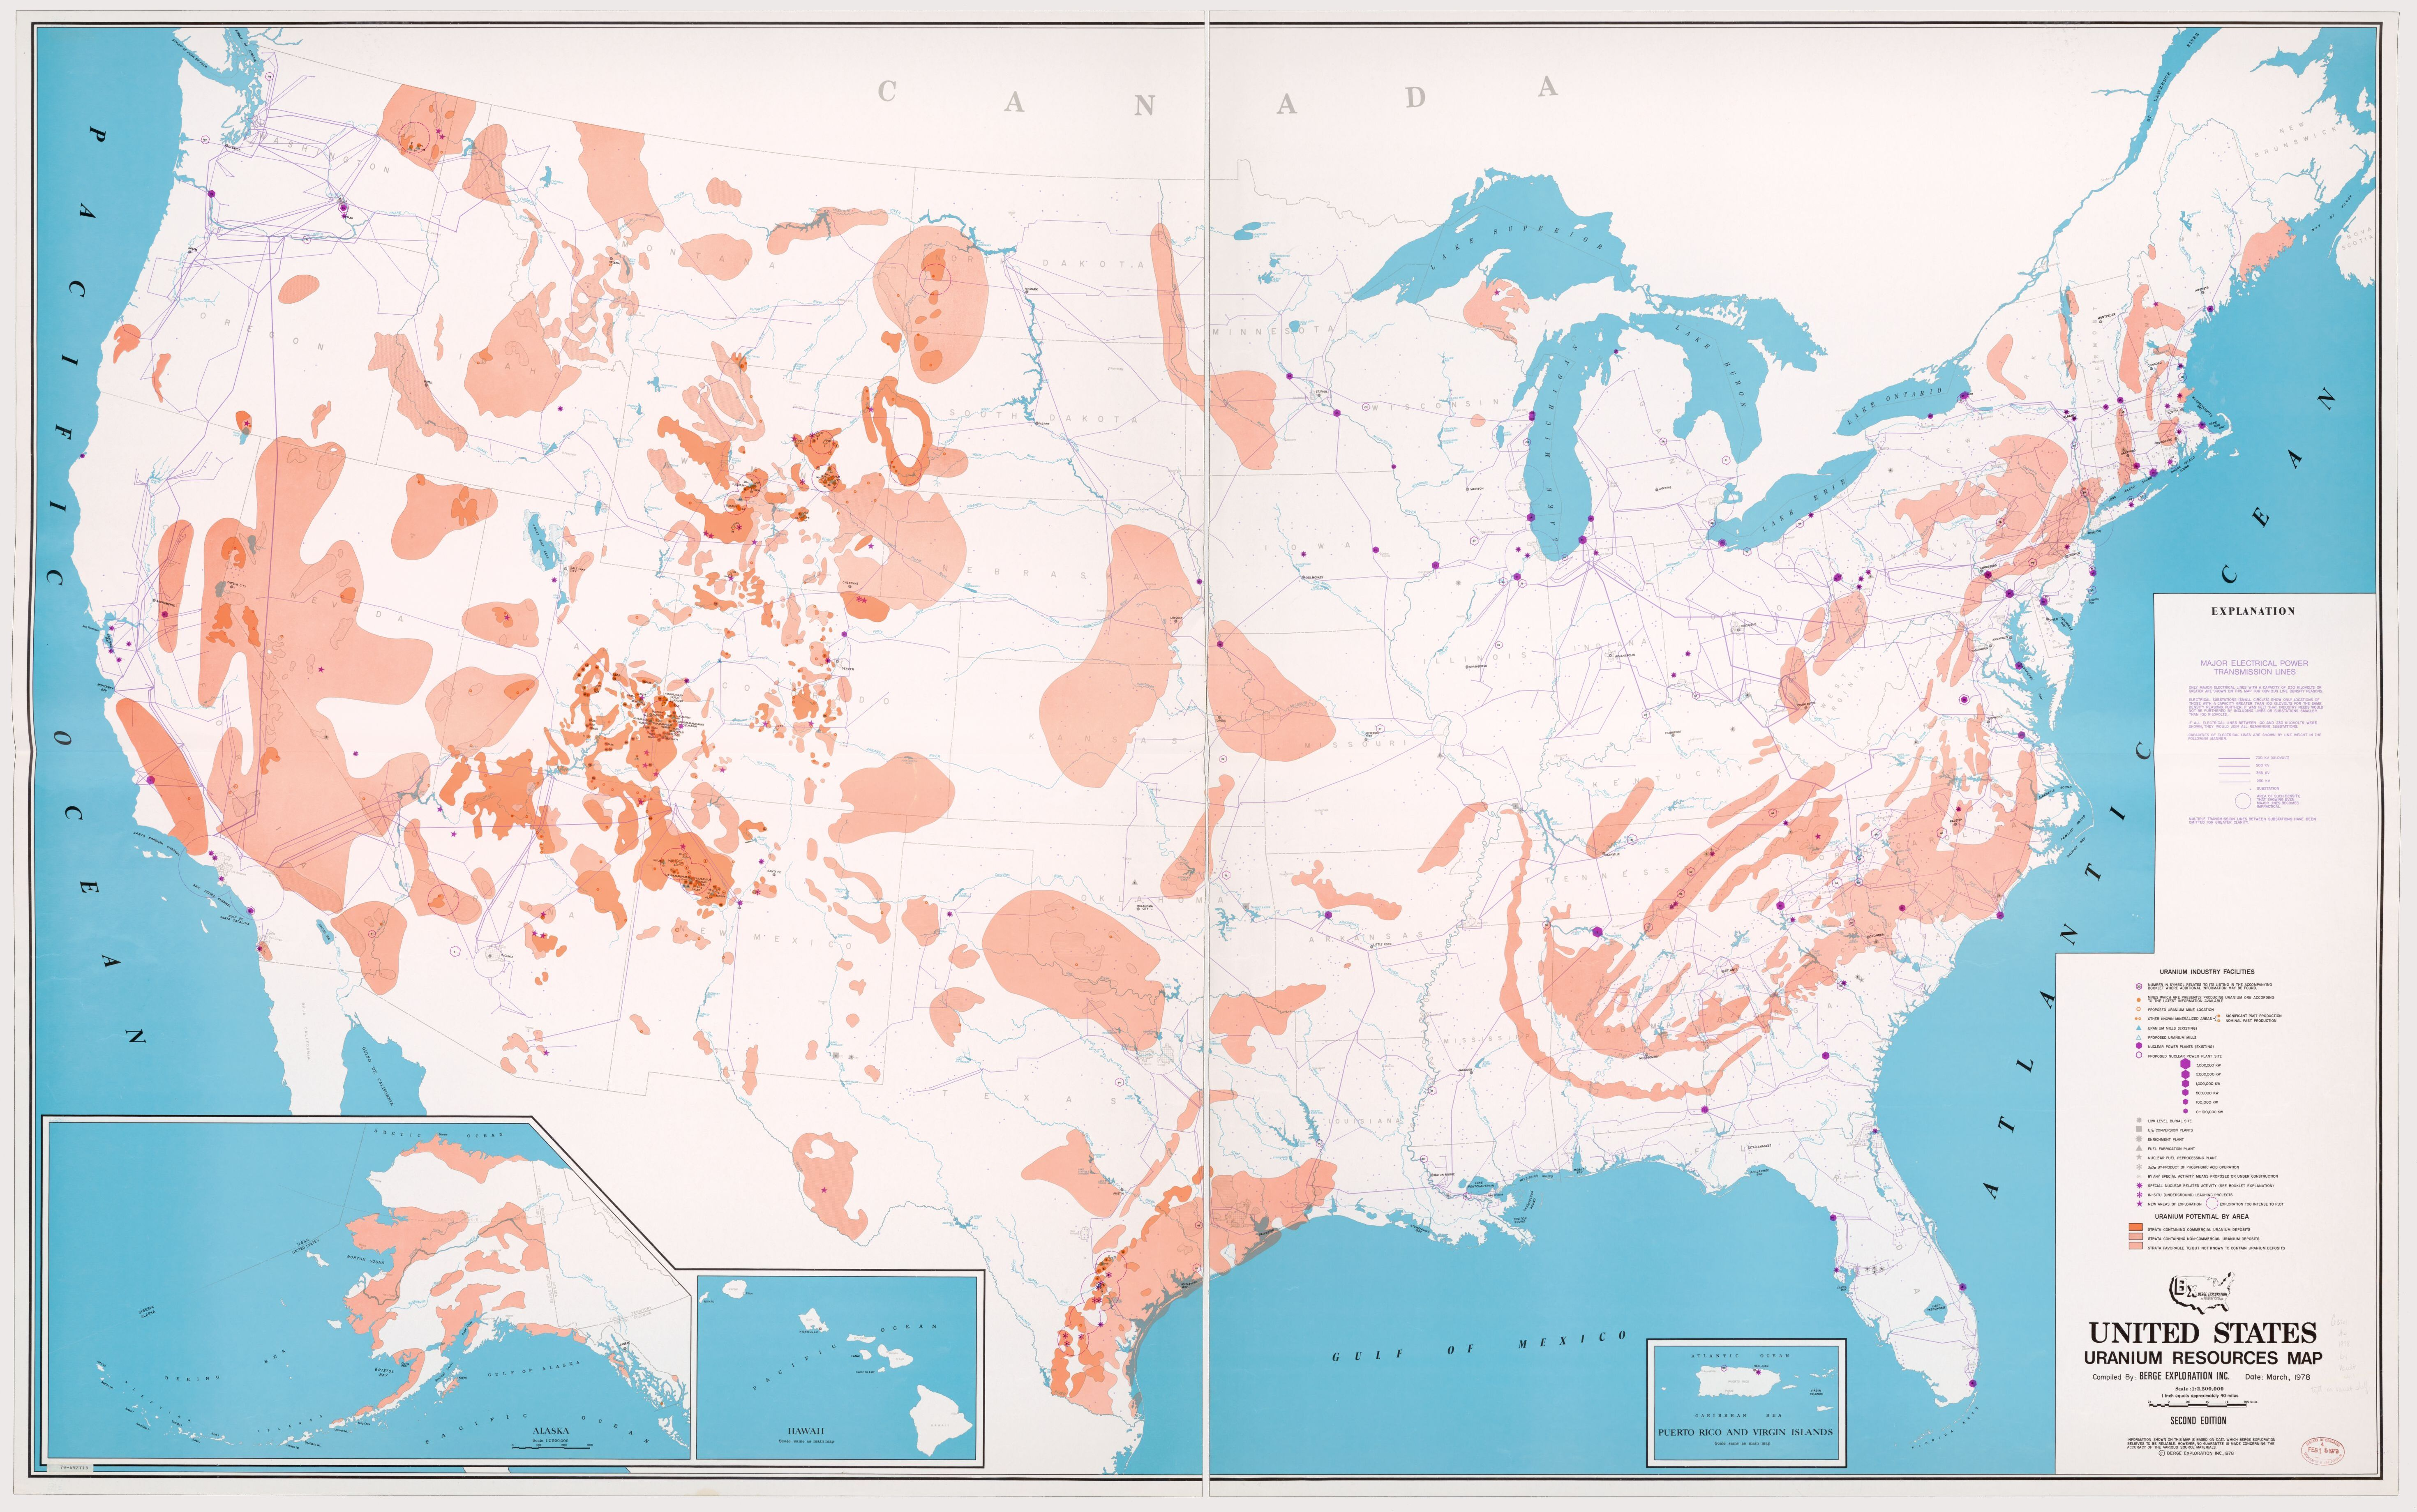 Map Of Uranium Deposits In The Us United States Uranium Resources | National Geographic Society